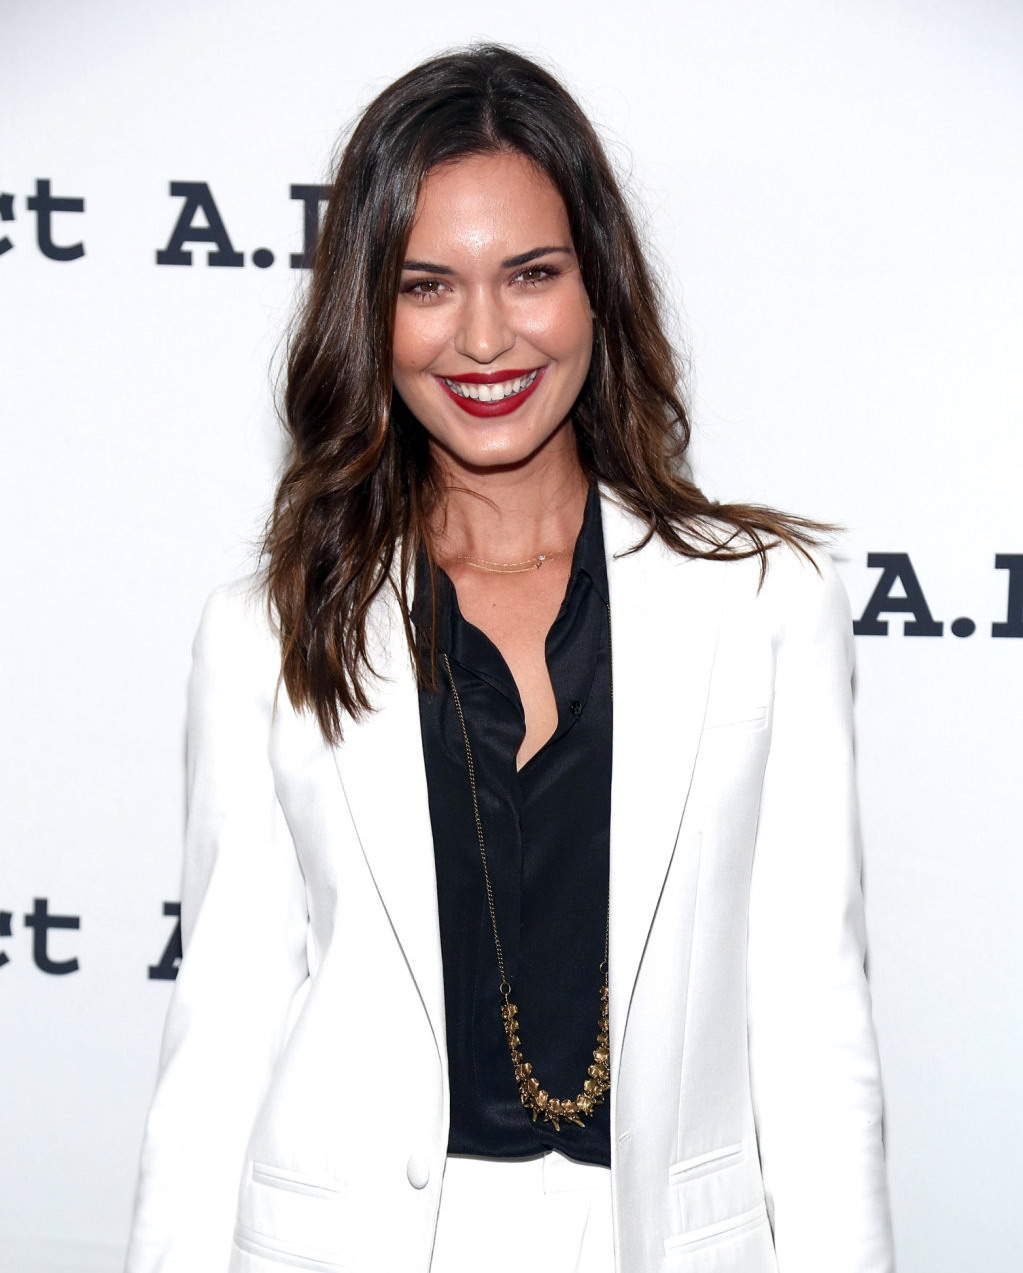 Odette Annable Project A.L.S. anniversary party in New York